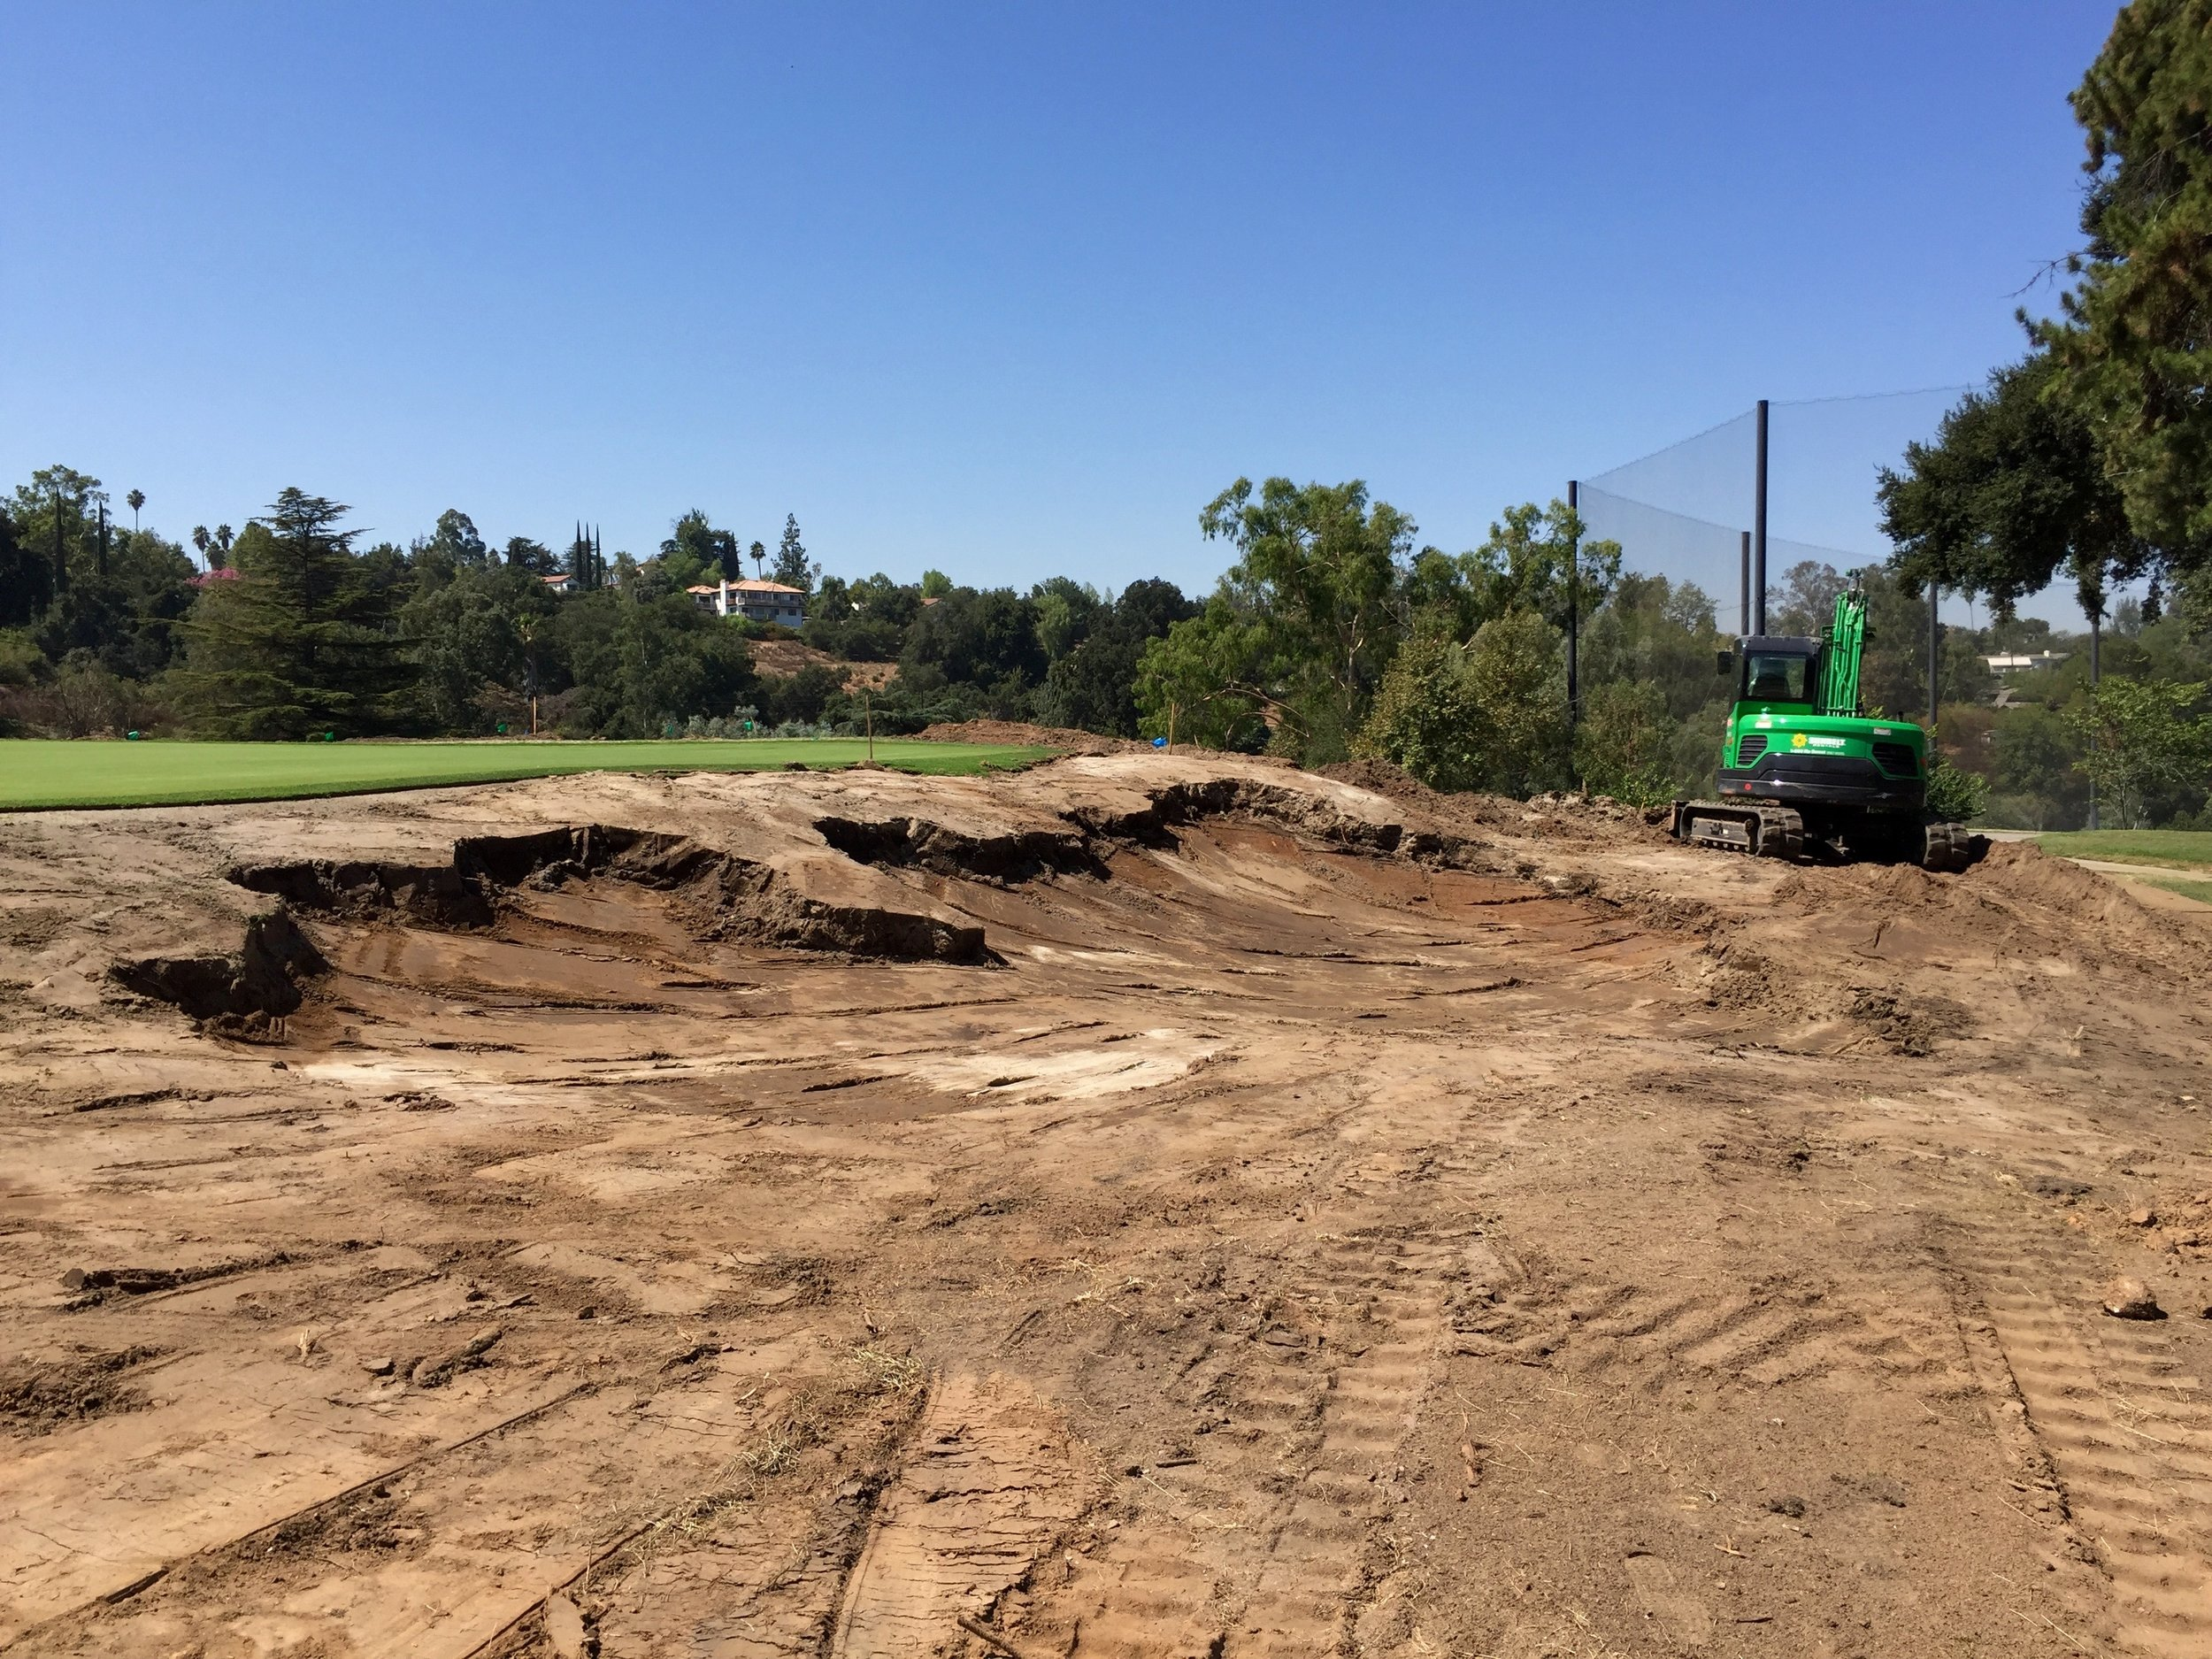 The right greenside bunker on the 4th hole needed to look right from not just the 4th fairway but also the 1st fairway, which plays right up toward it.